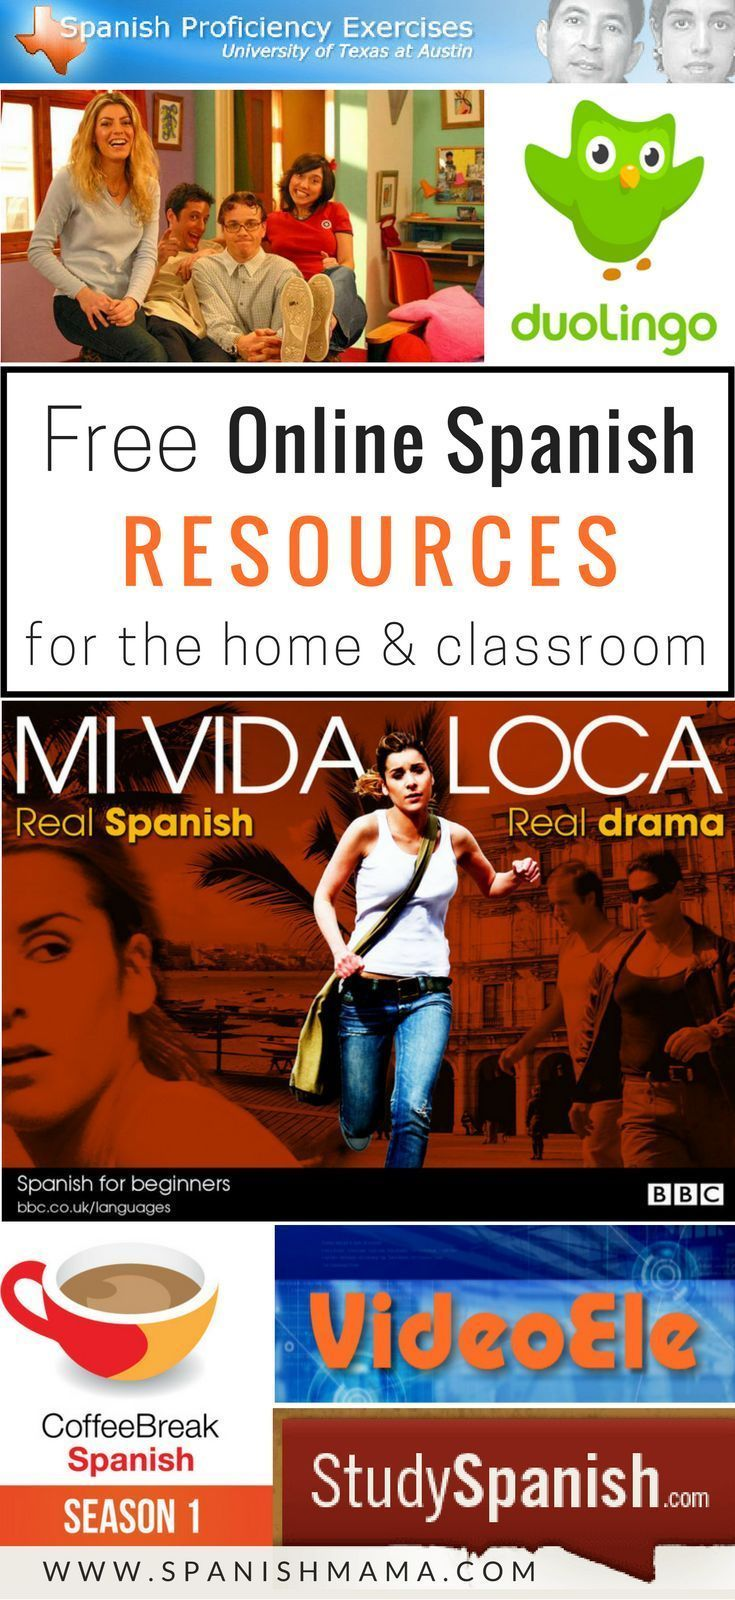 5 Fantastic and Free Spanish-Learning Websites for Kids